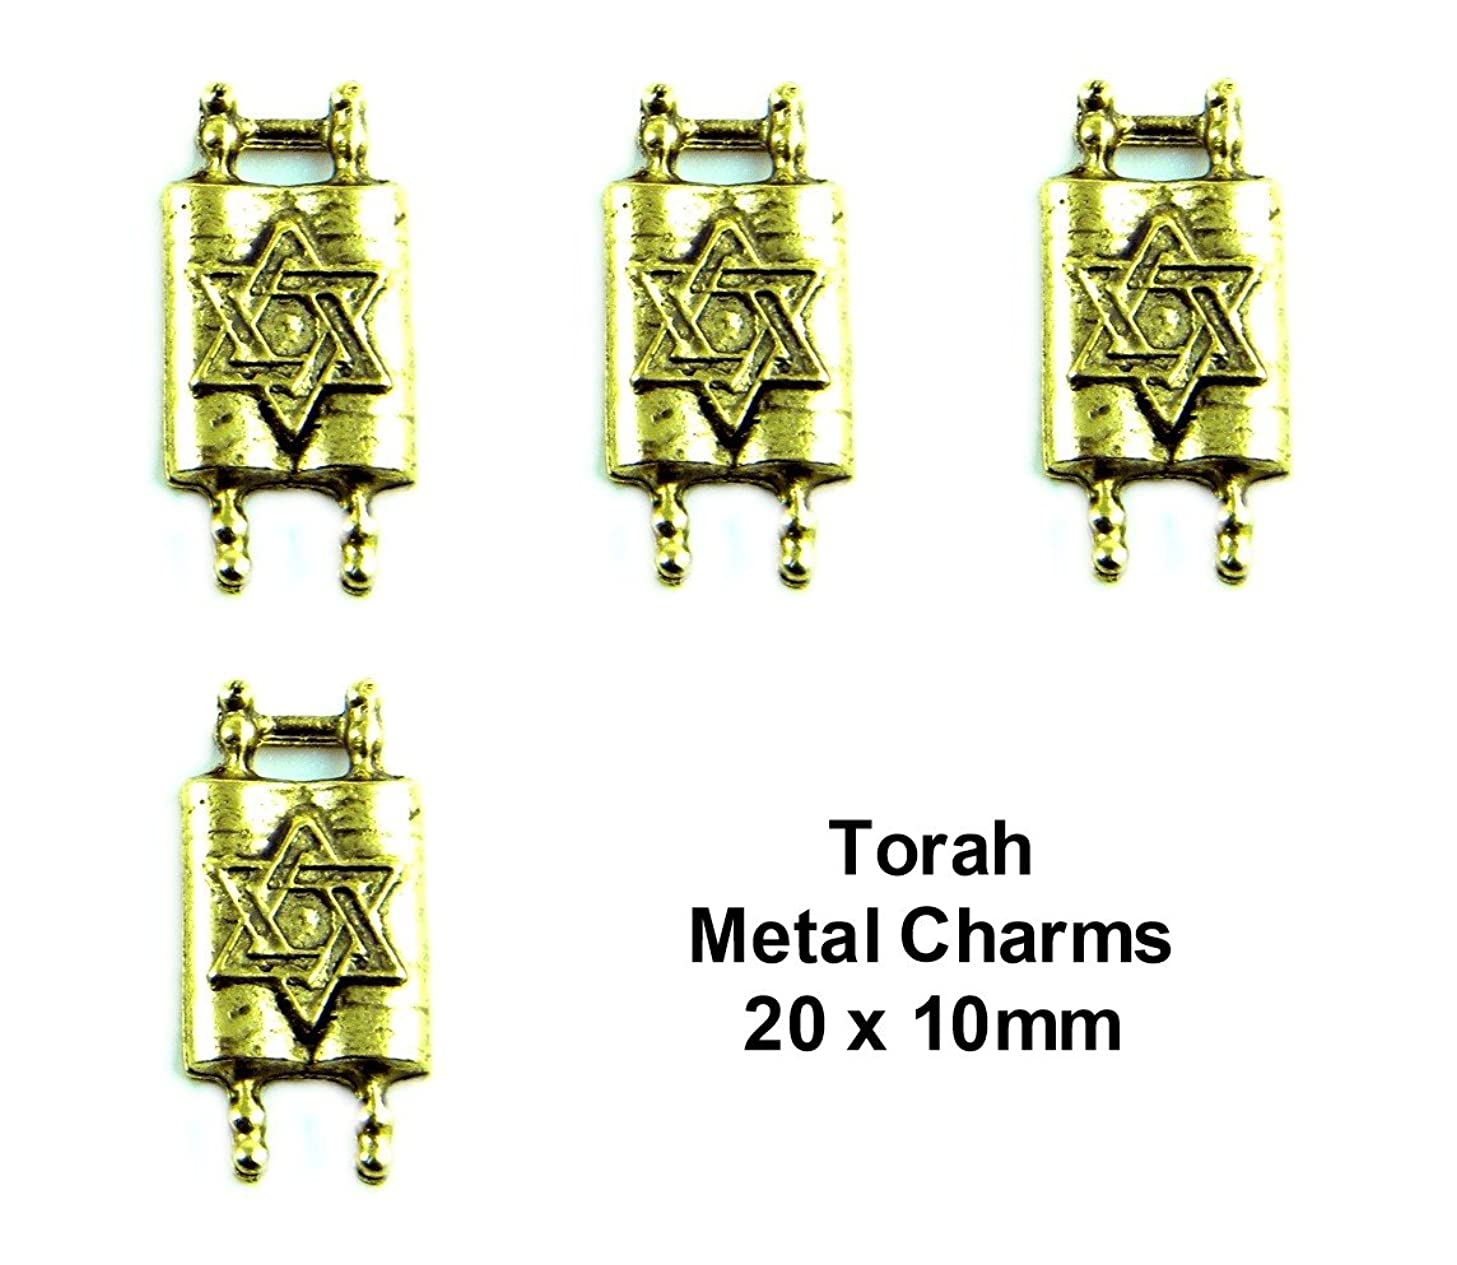 PlanetZia 6pcs Jewish Torah with Star of David Charms For Jewelry Making TVT-1022-1 (Antique Gold)